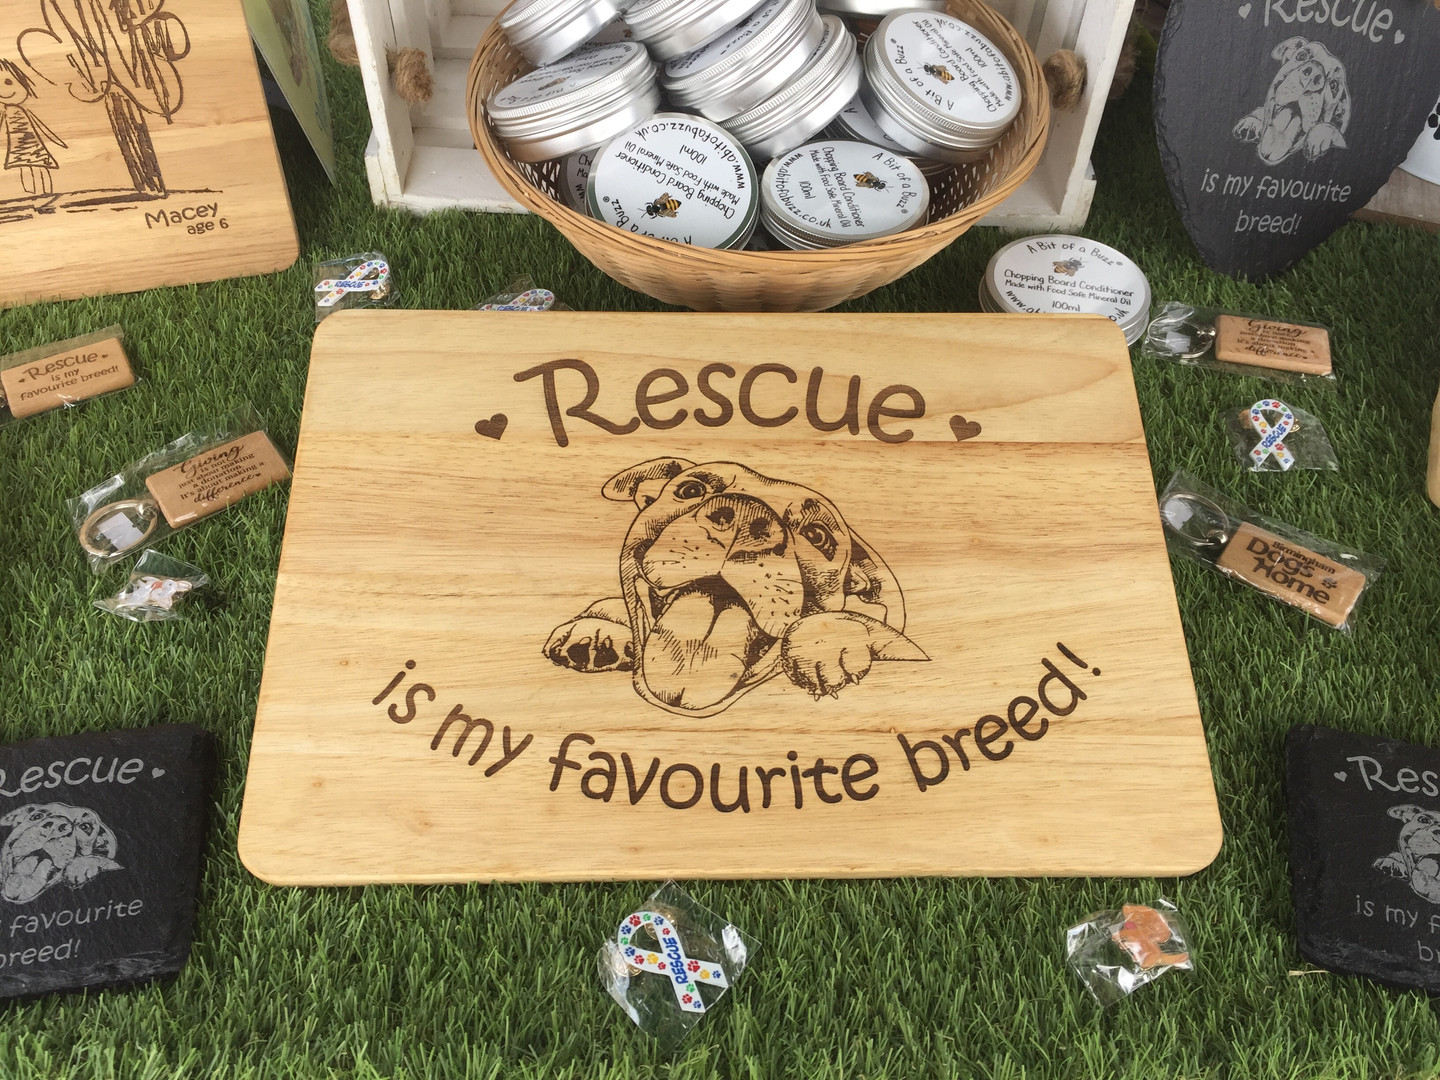 Rescue is my favourite breed!